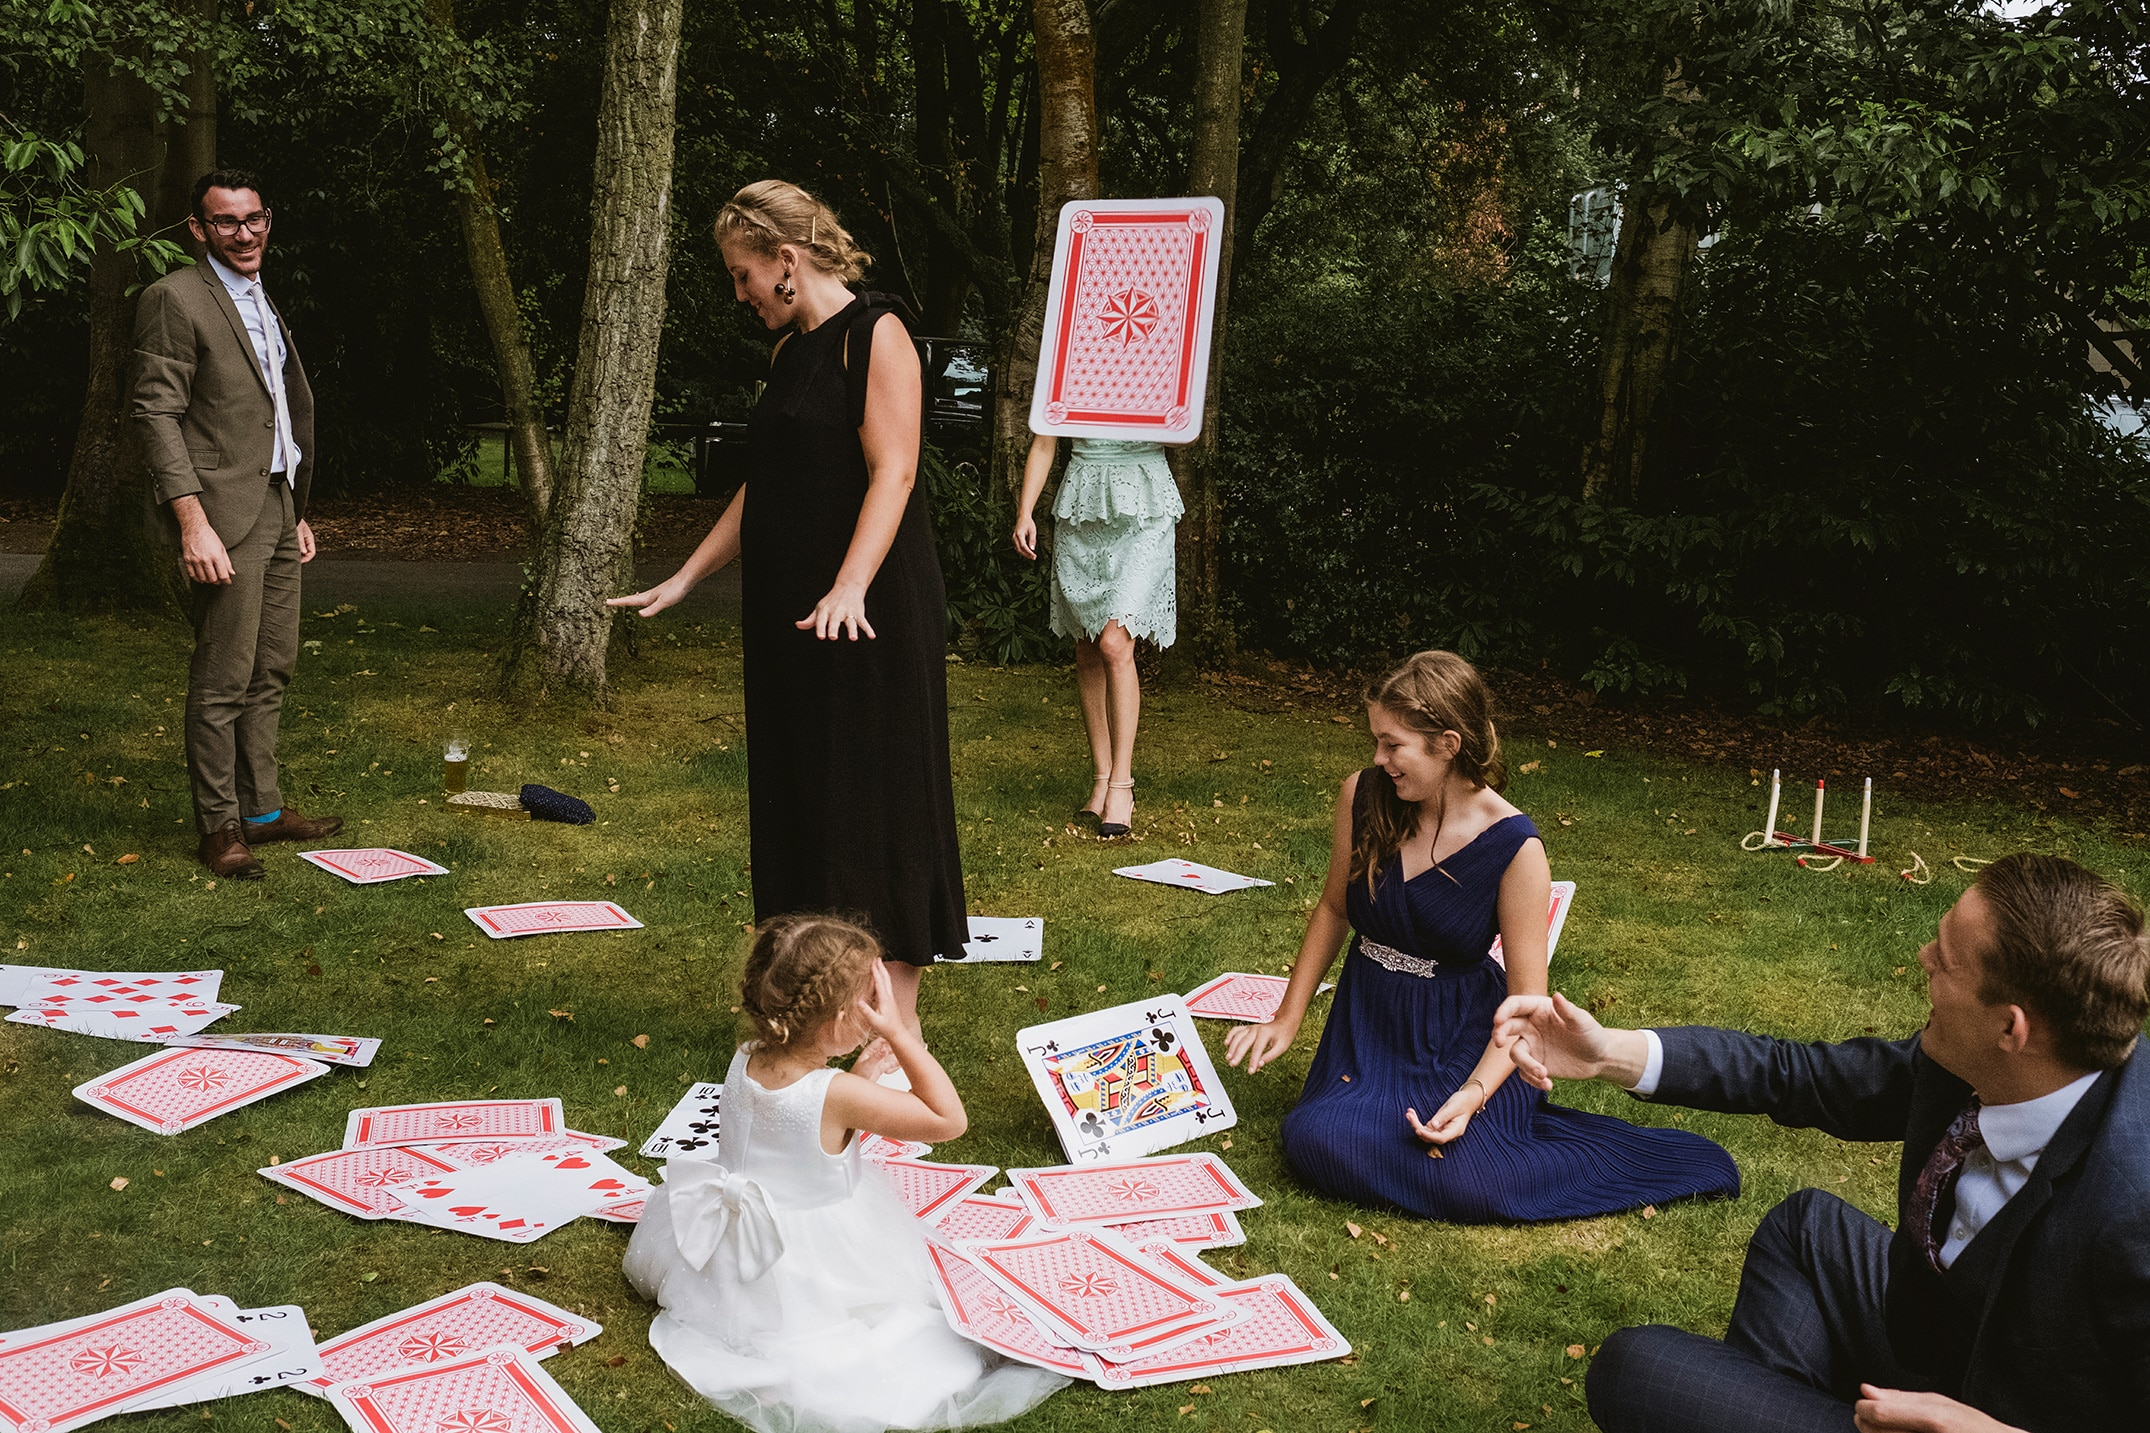 street style documentary wedding image of a group of wedding guests playing with oversized cards during a wedding reception. Central a card flying through the air covers the head and shoulders of a girl in turquoise dress